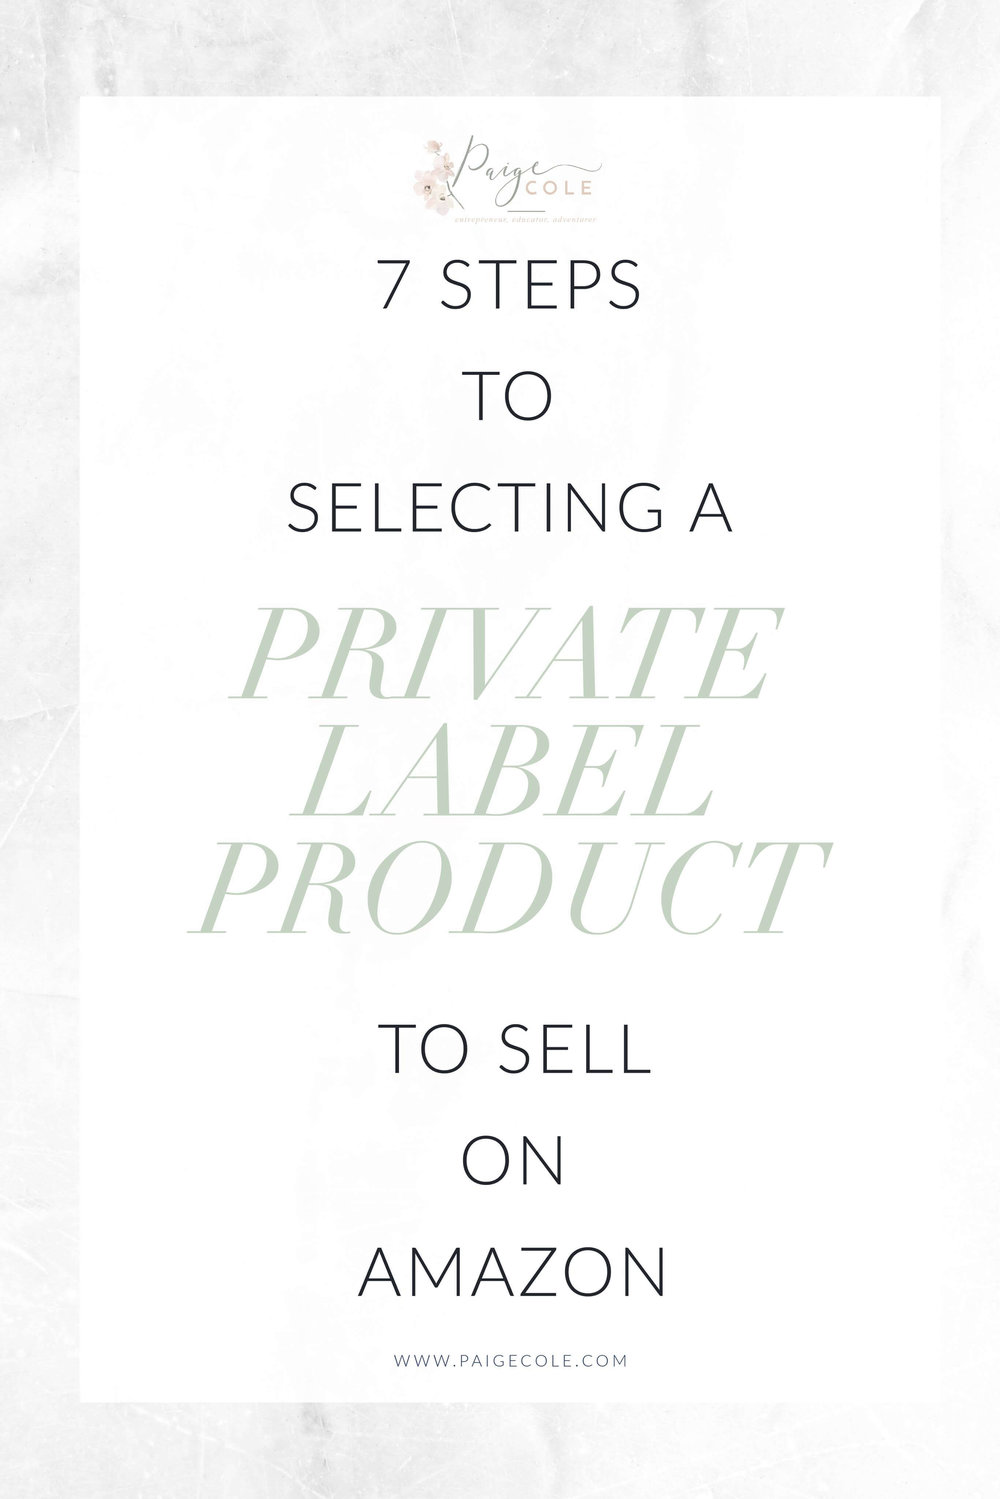 Are you looking to be a profitable seller on Amazon? Here are 7 Steps to Selecting a Private Label Product to Sell on Amazon.